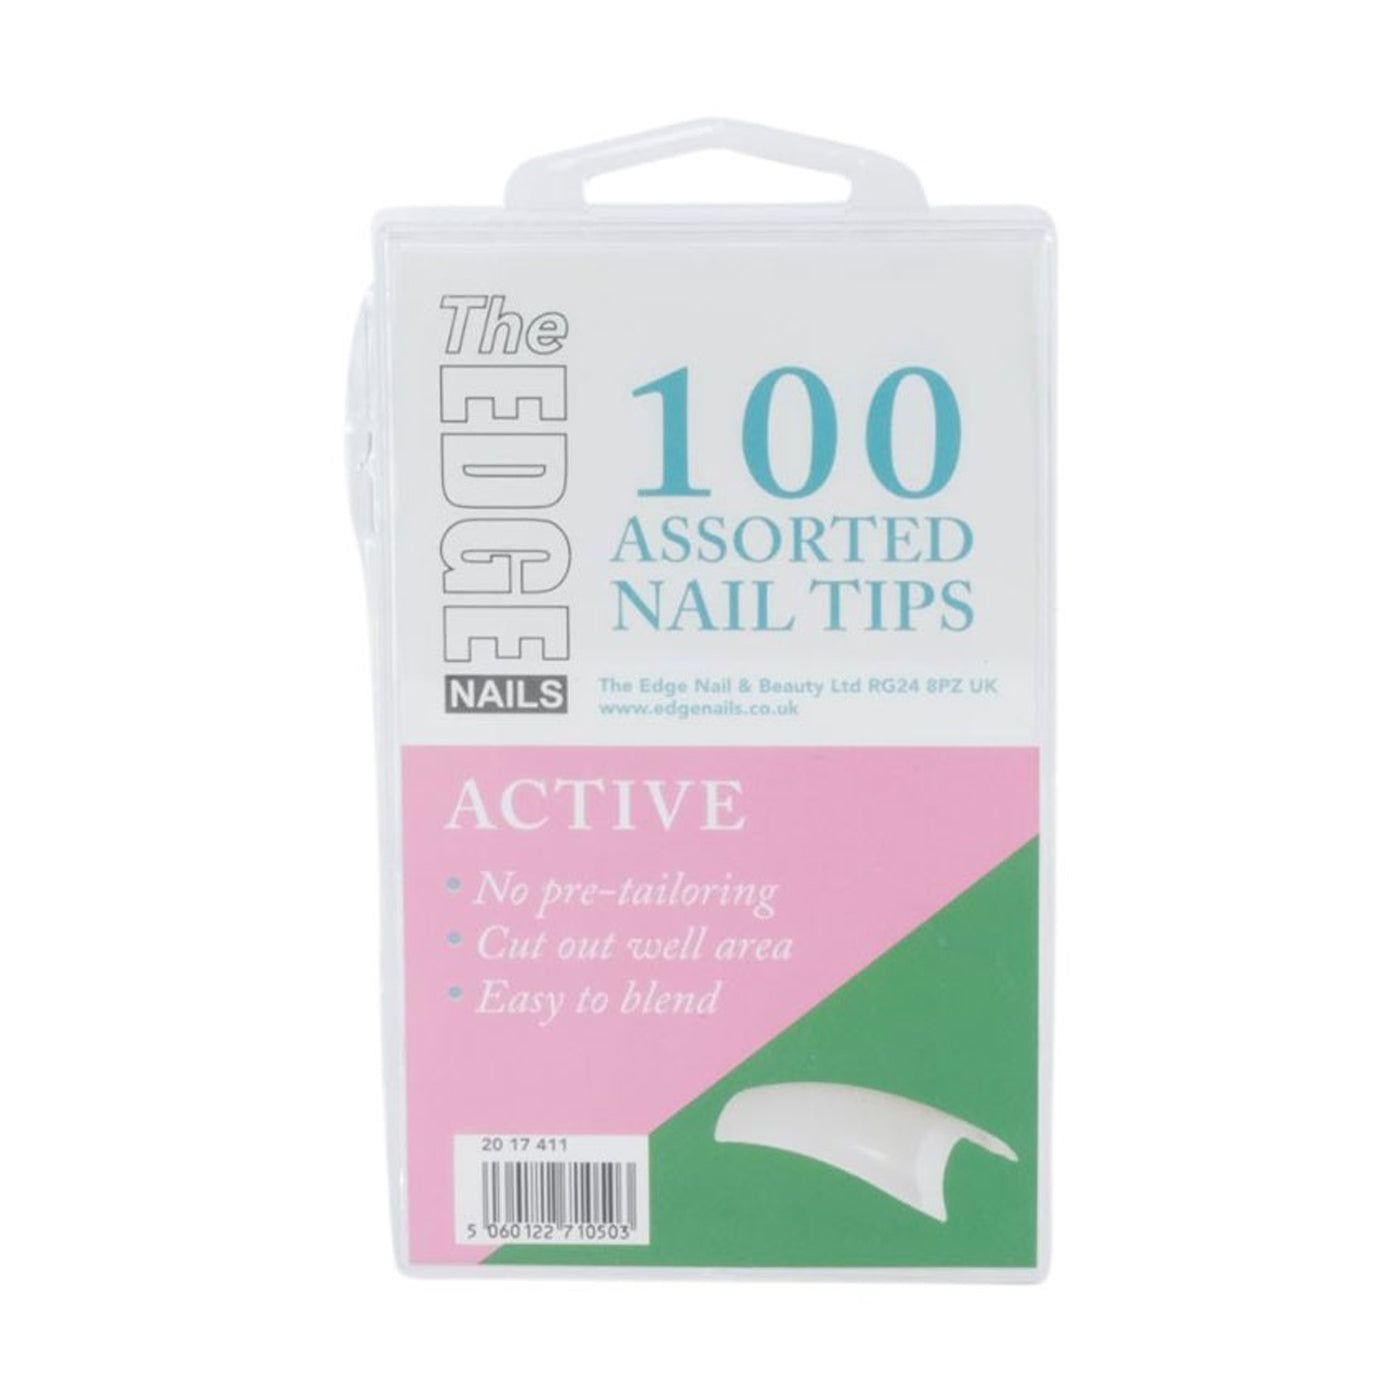 Edge Nails Active Tips Assorted Pack (x100) – Ultimate Hair and Beauty